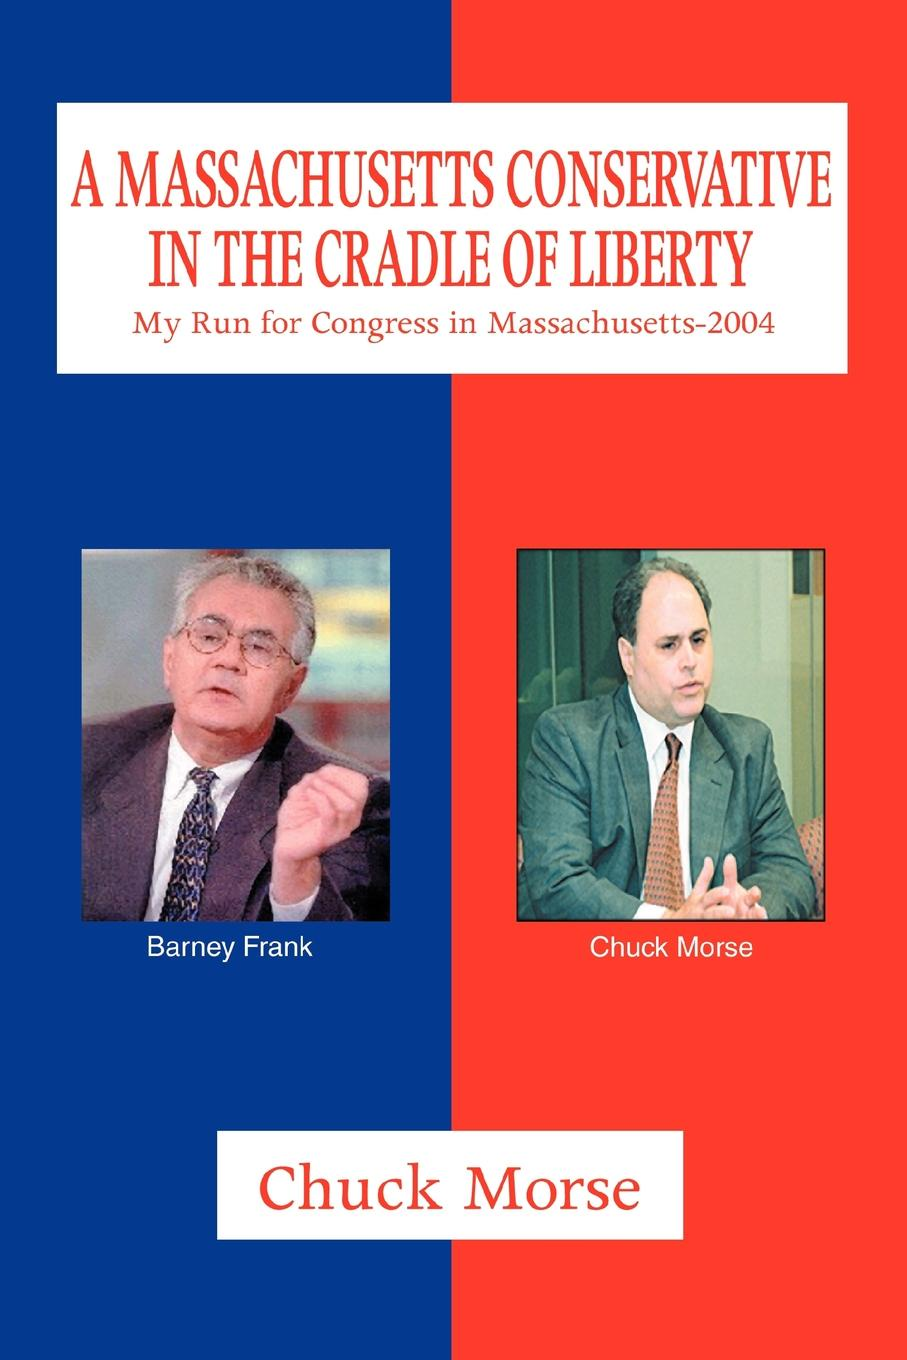 A Massachusetts Conservative in the Cradle of Liberty. My Run for Congress in Massachusetts-2004. Chuck Morse